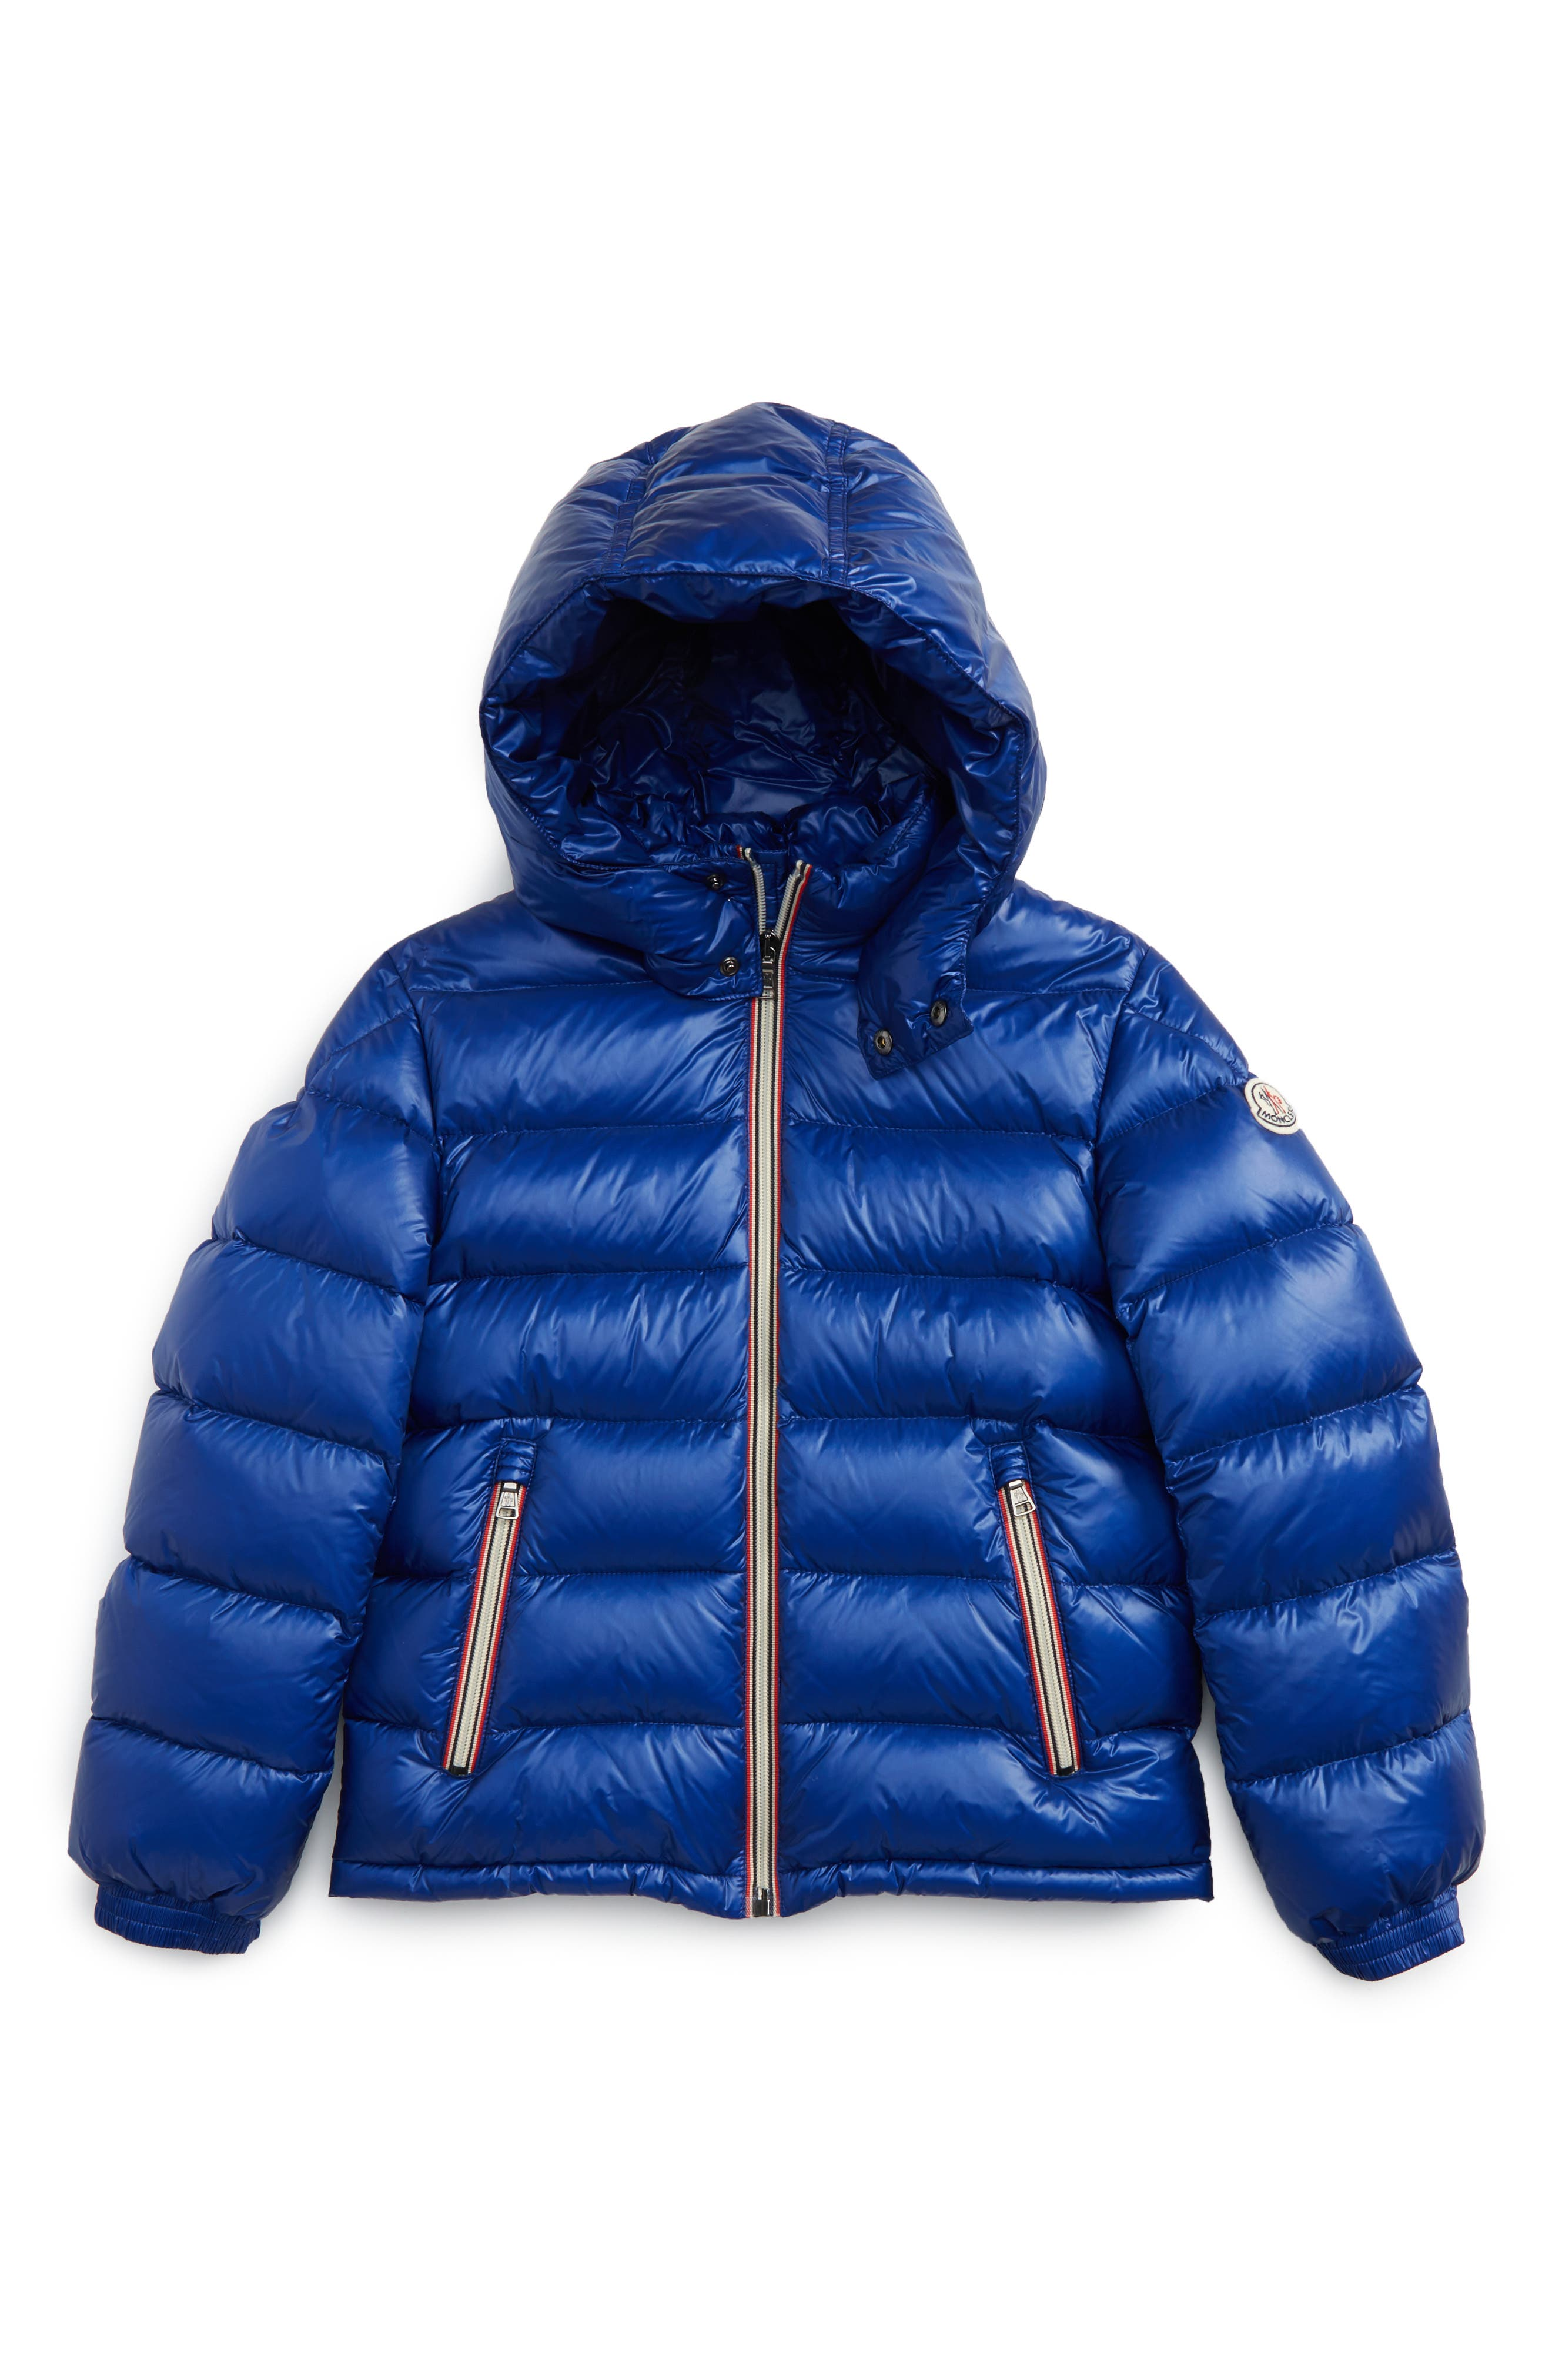 Moncler New Gaston Hooded Water Resistant Down Jacket (Toddler Boys, Little Boys & Big Boys)